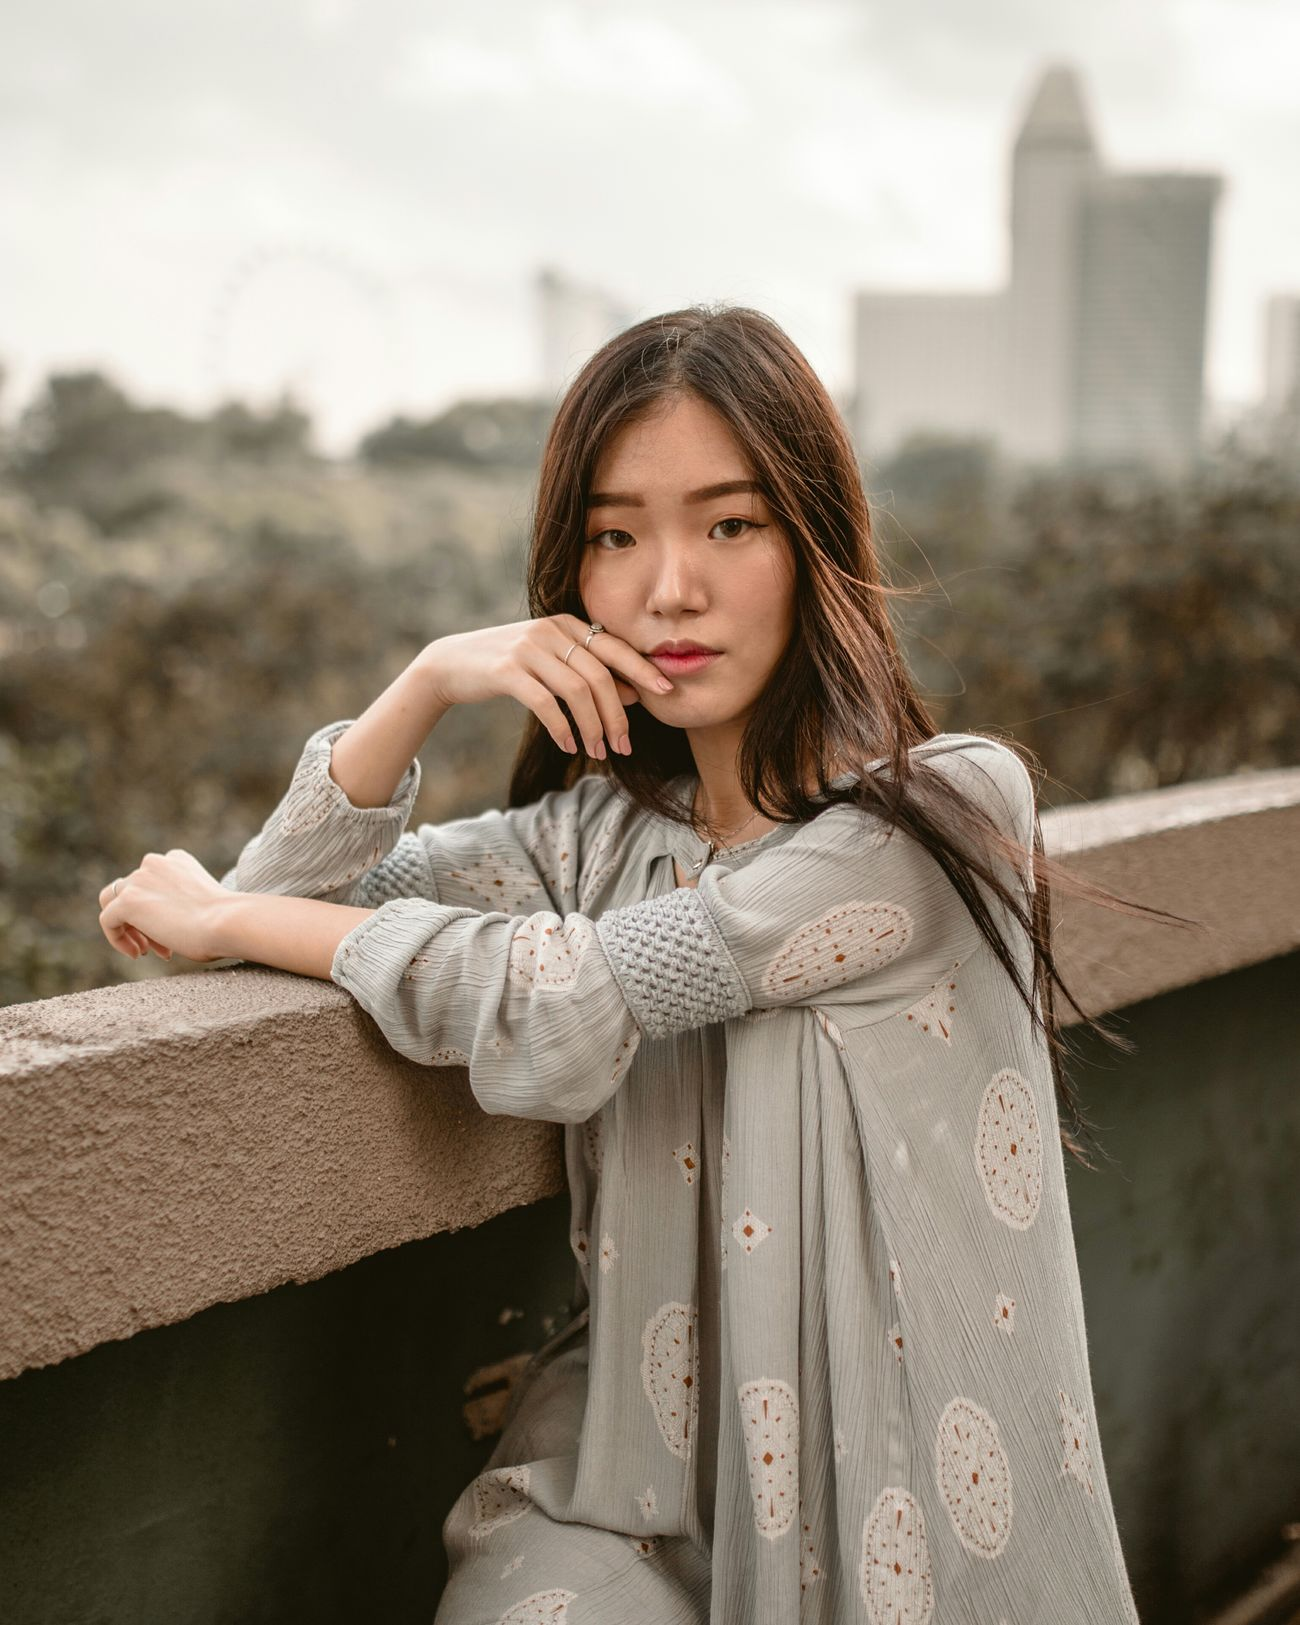 some days are gold Beautiful People Women Of EyeEm Portrait Of A Woman Portrait Of A Girl One Woman Only Portrait Photography Portrait Roof Top Singapore Beautiful Woman Outdoors Natural Light Portrait Wind In Hair Wind In Her Hair Lonely